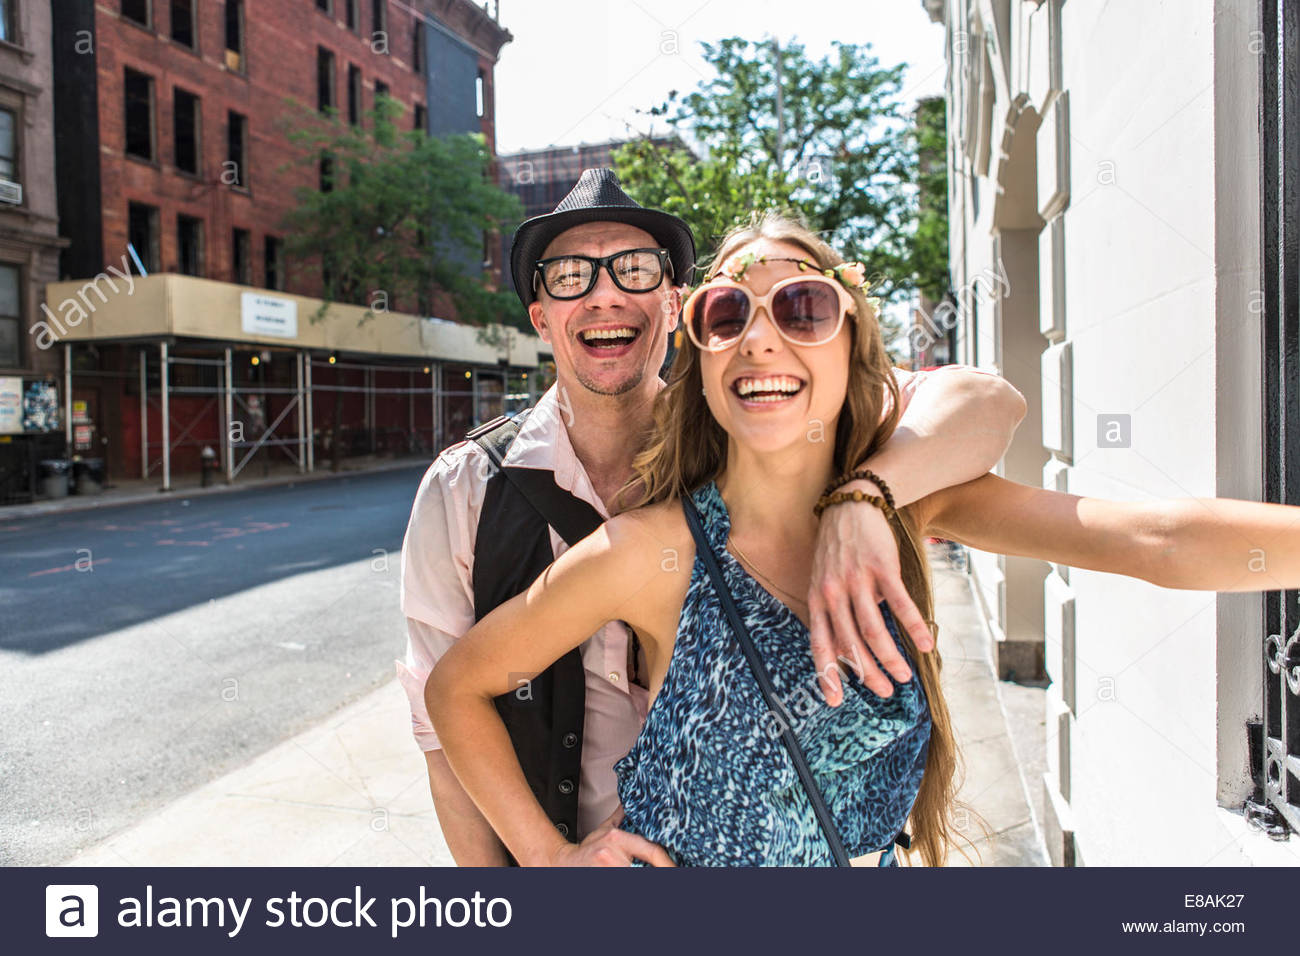 En couple Funky Street, New York City, États-Unis Photo Stock